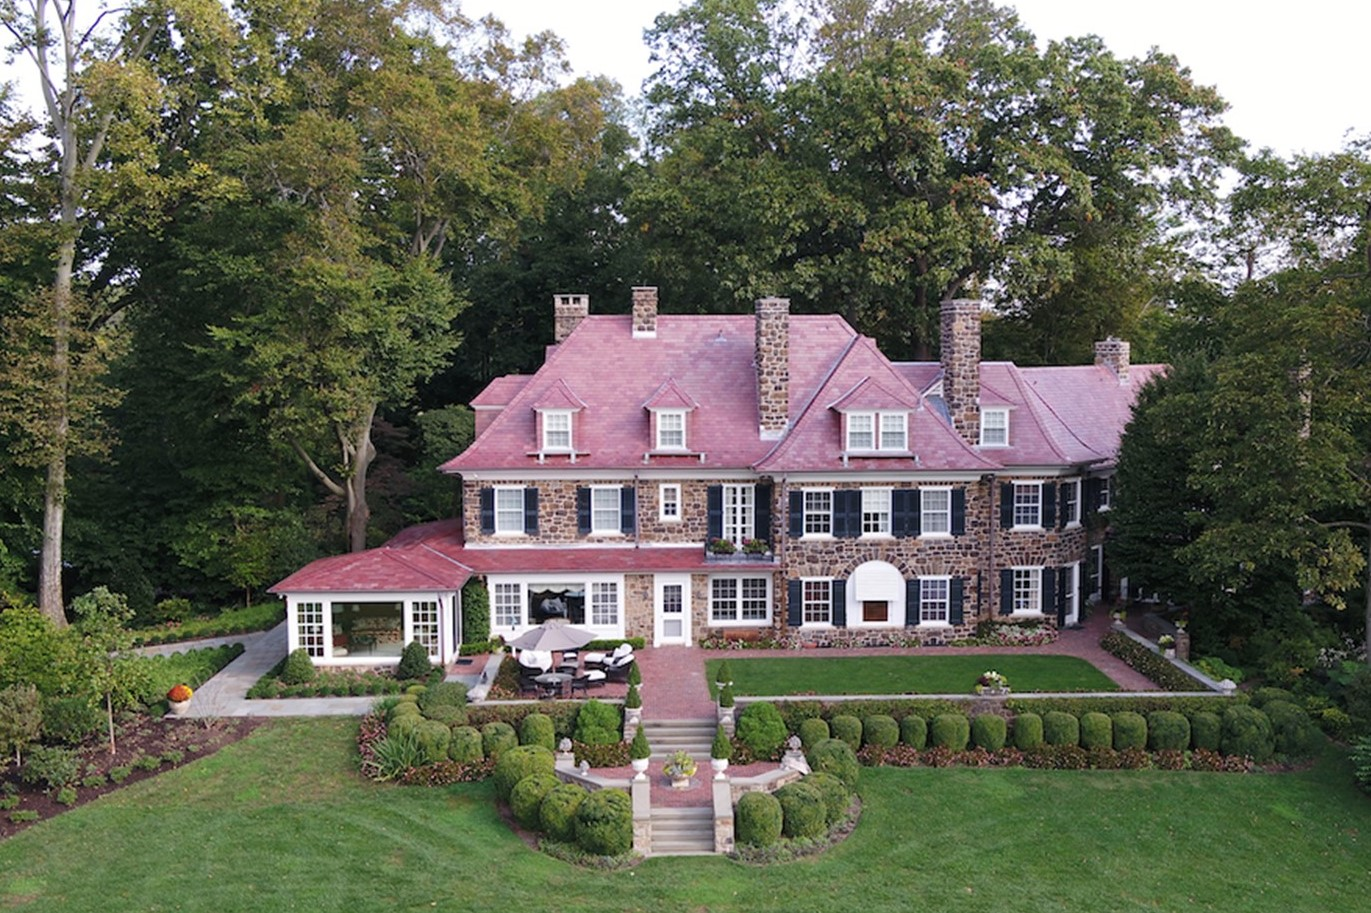 Berwyn Estate, 222 Acres and All, Hits Market as Most Expensive Listing in Pennsylvania